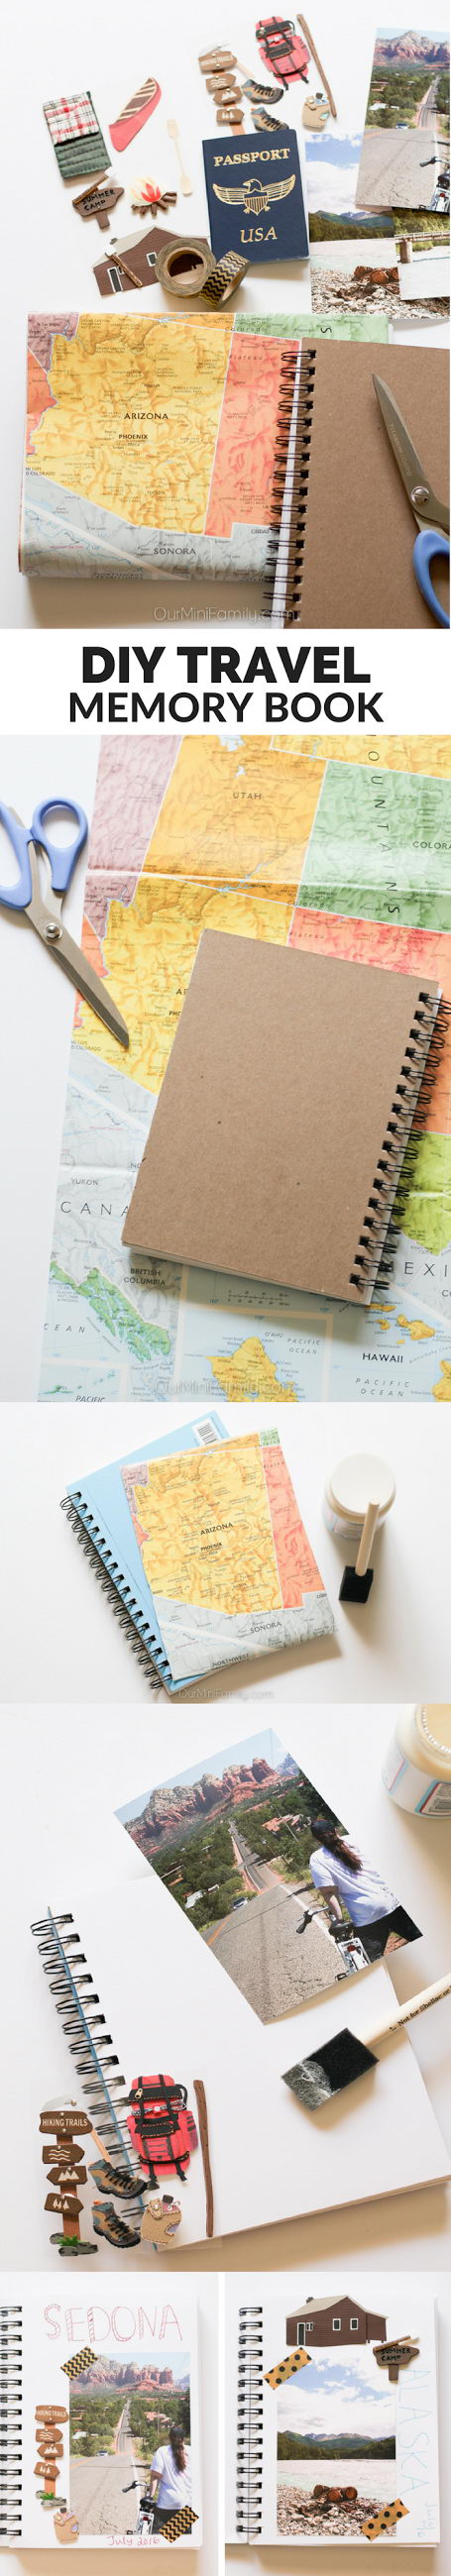 Easy DIY Travel Memory Book for Documenting All of Your Adventures.